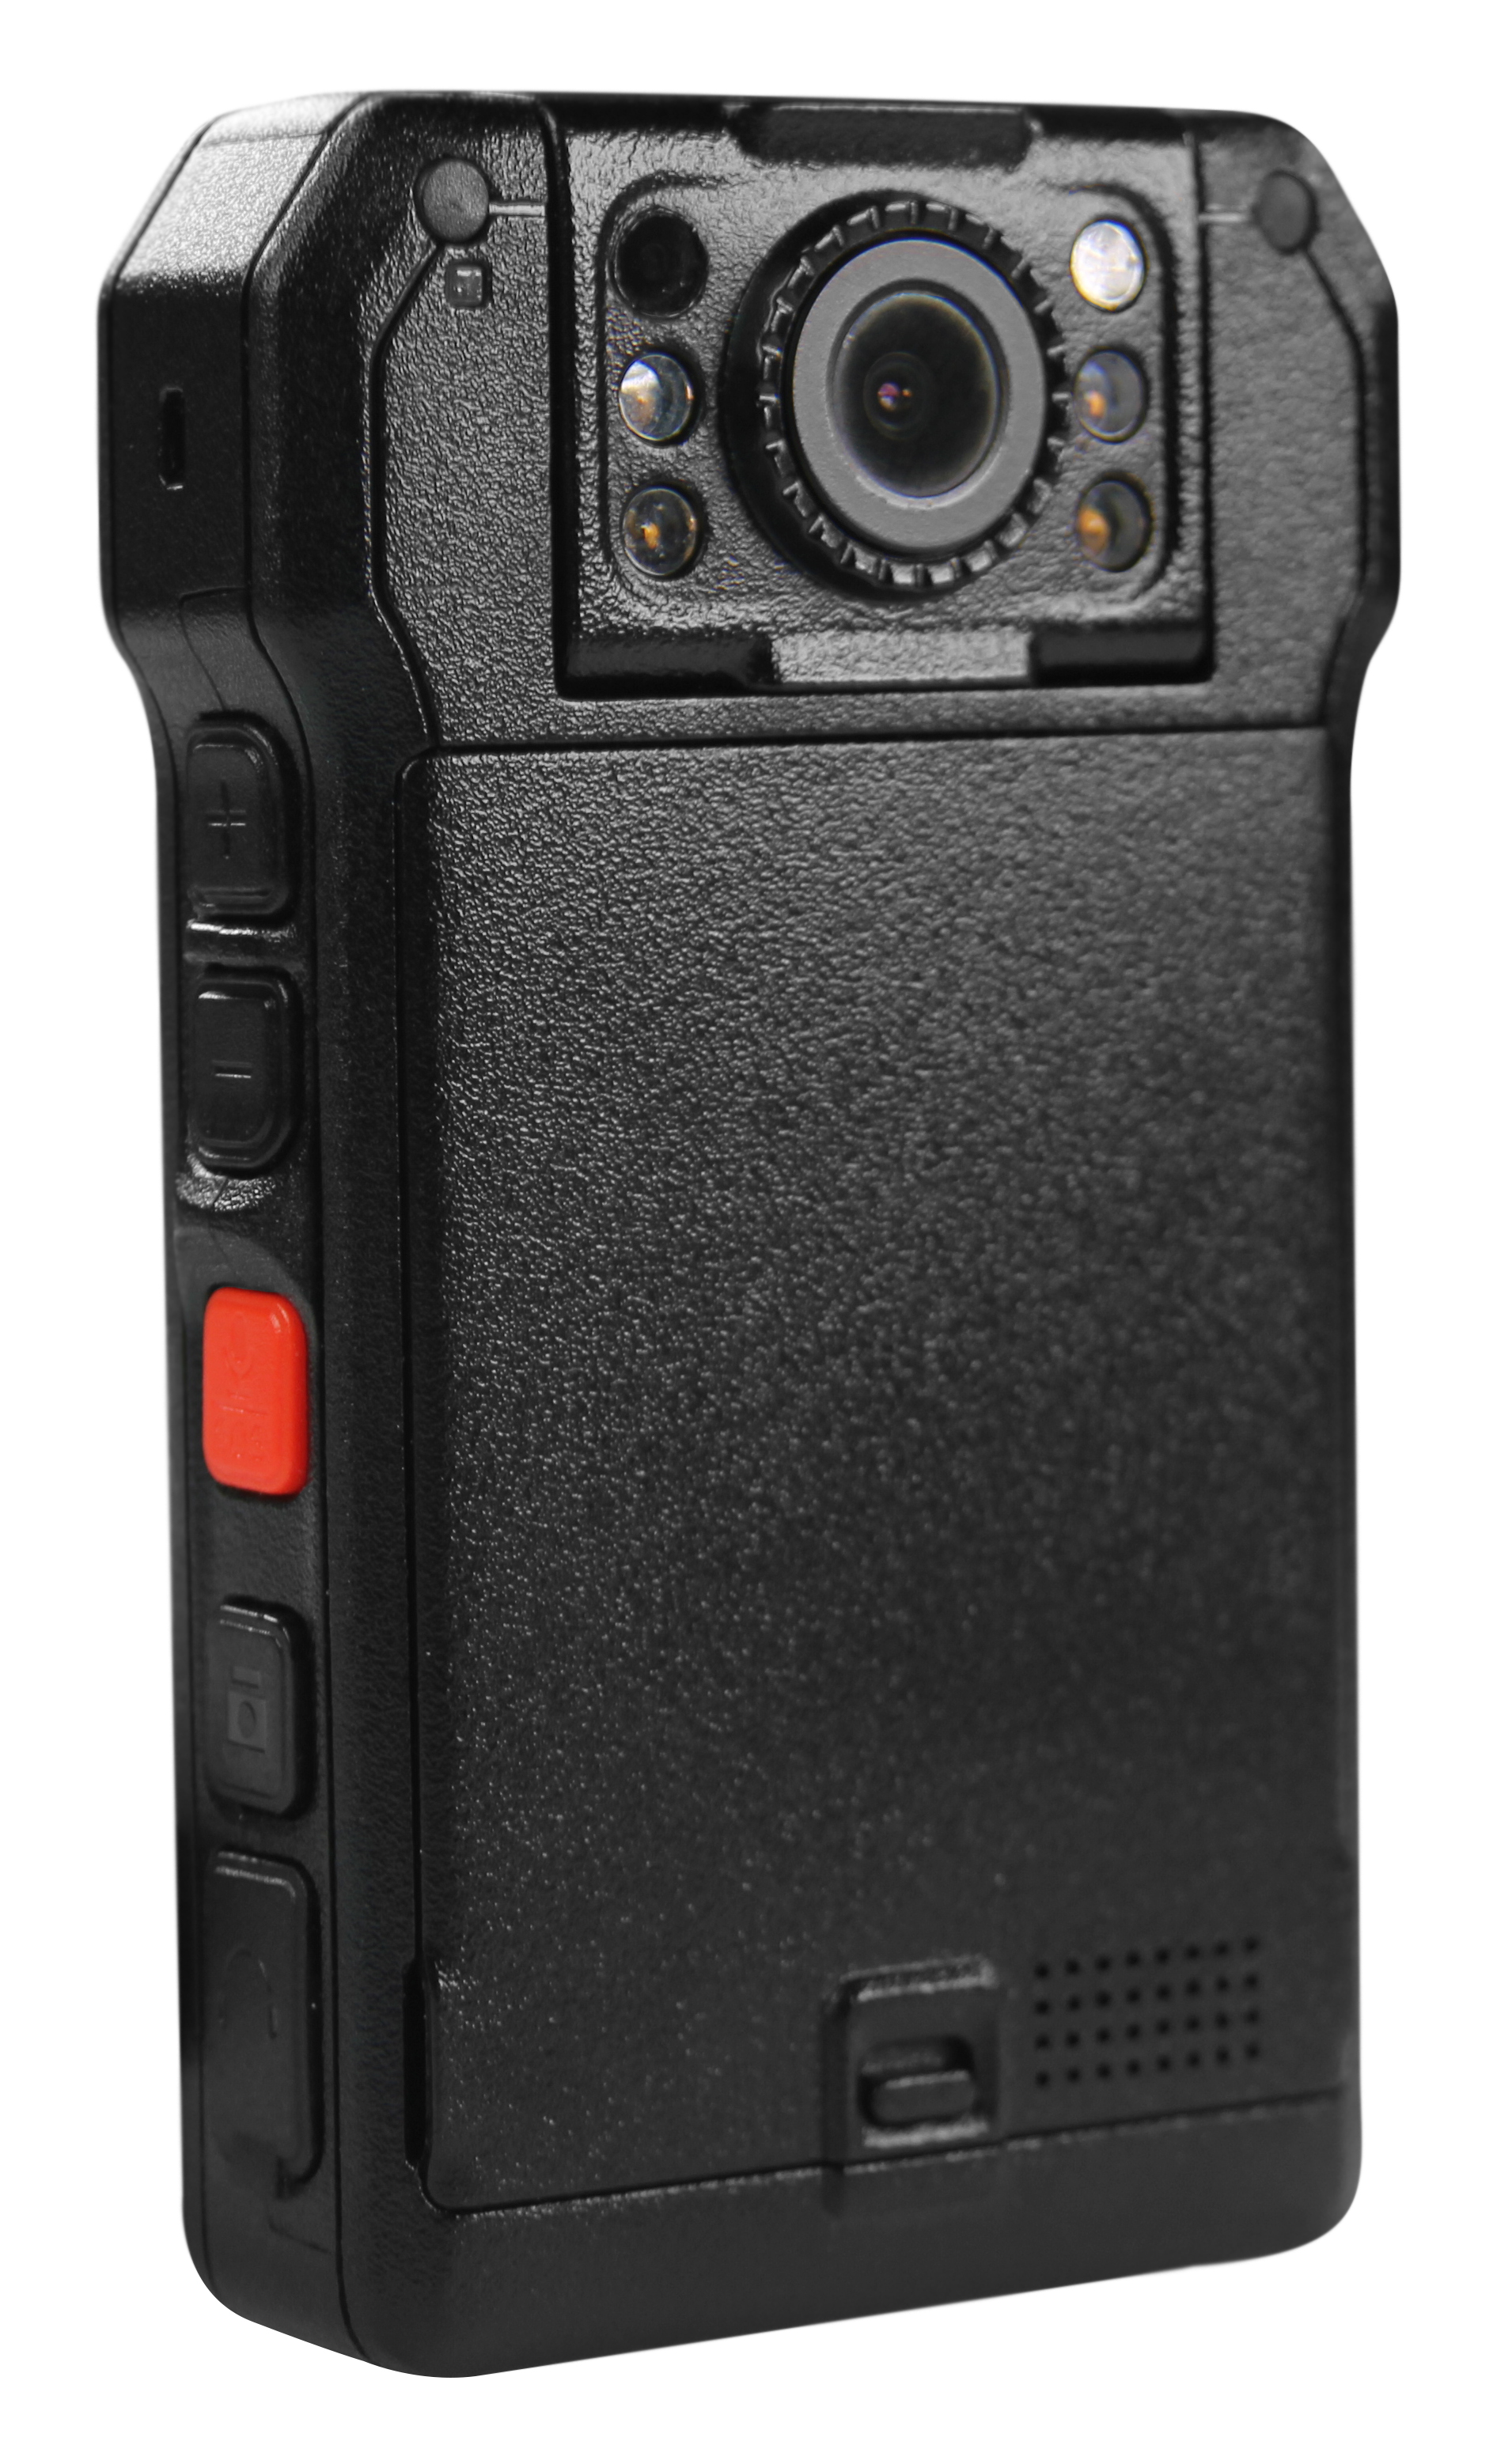 wolfcom x1 police body camera back